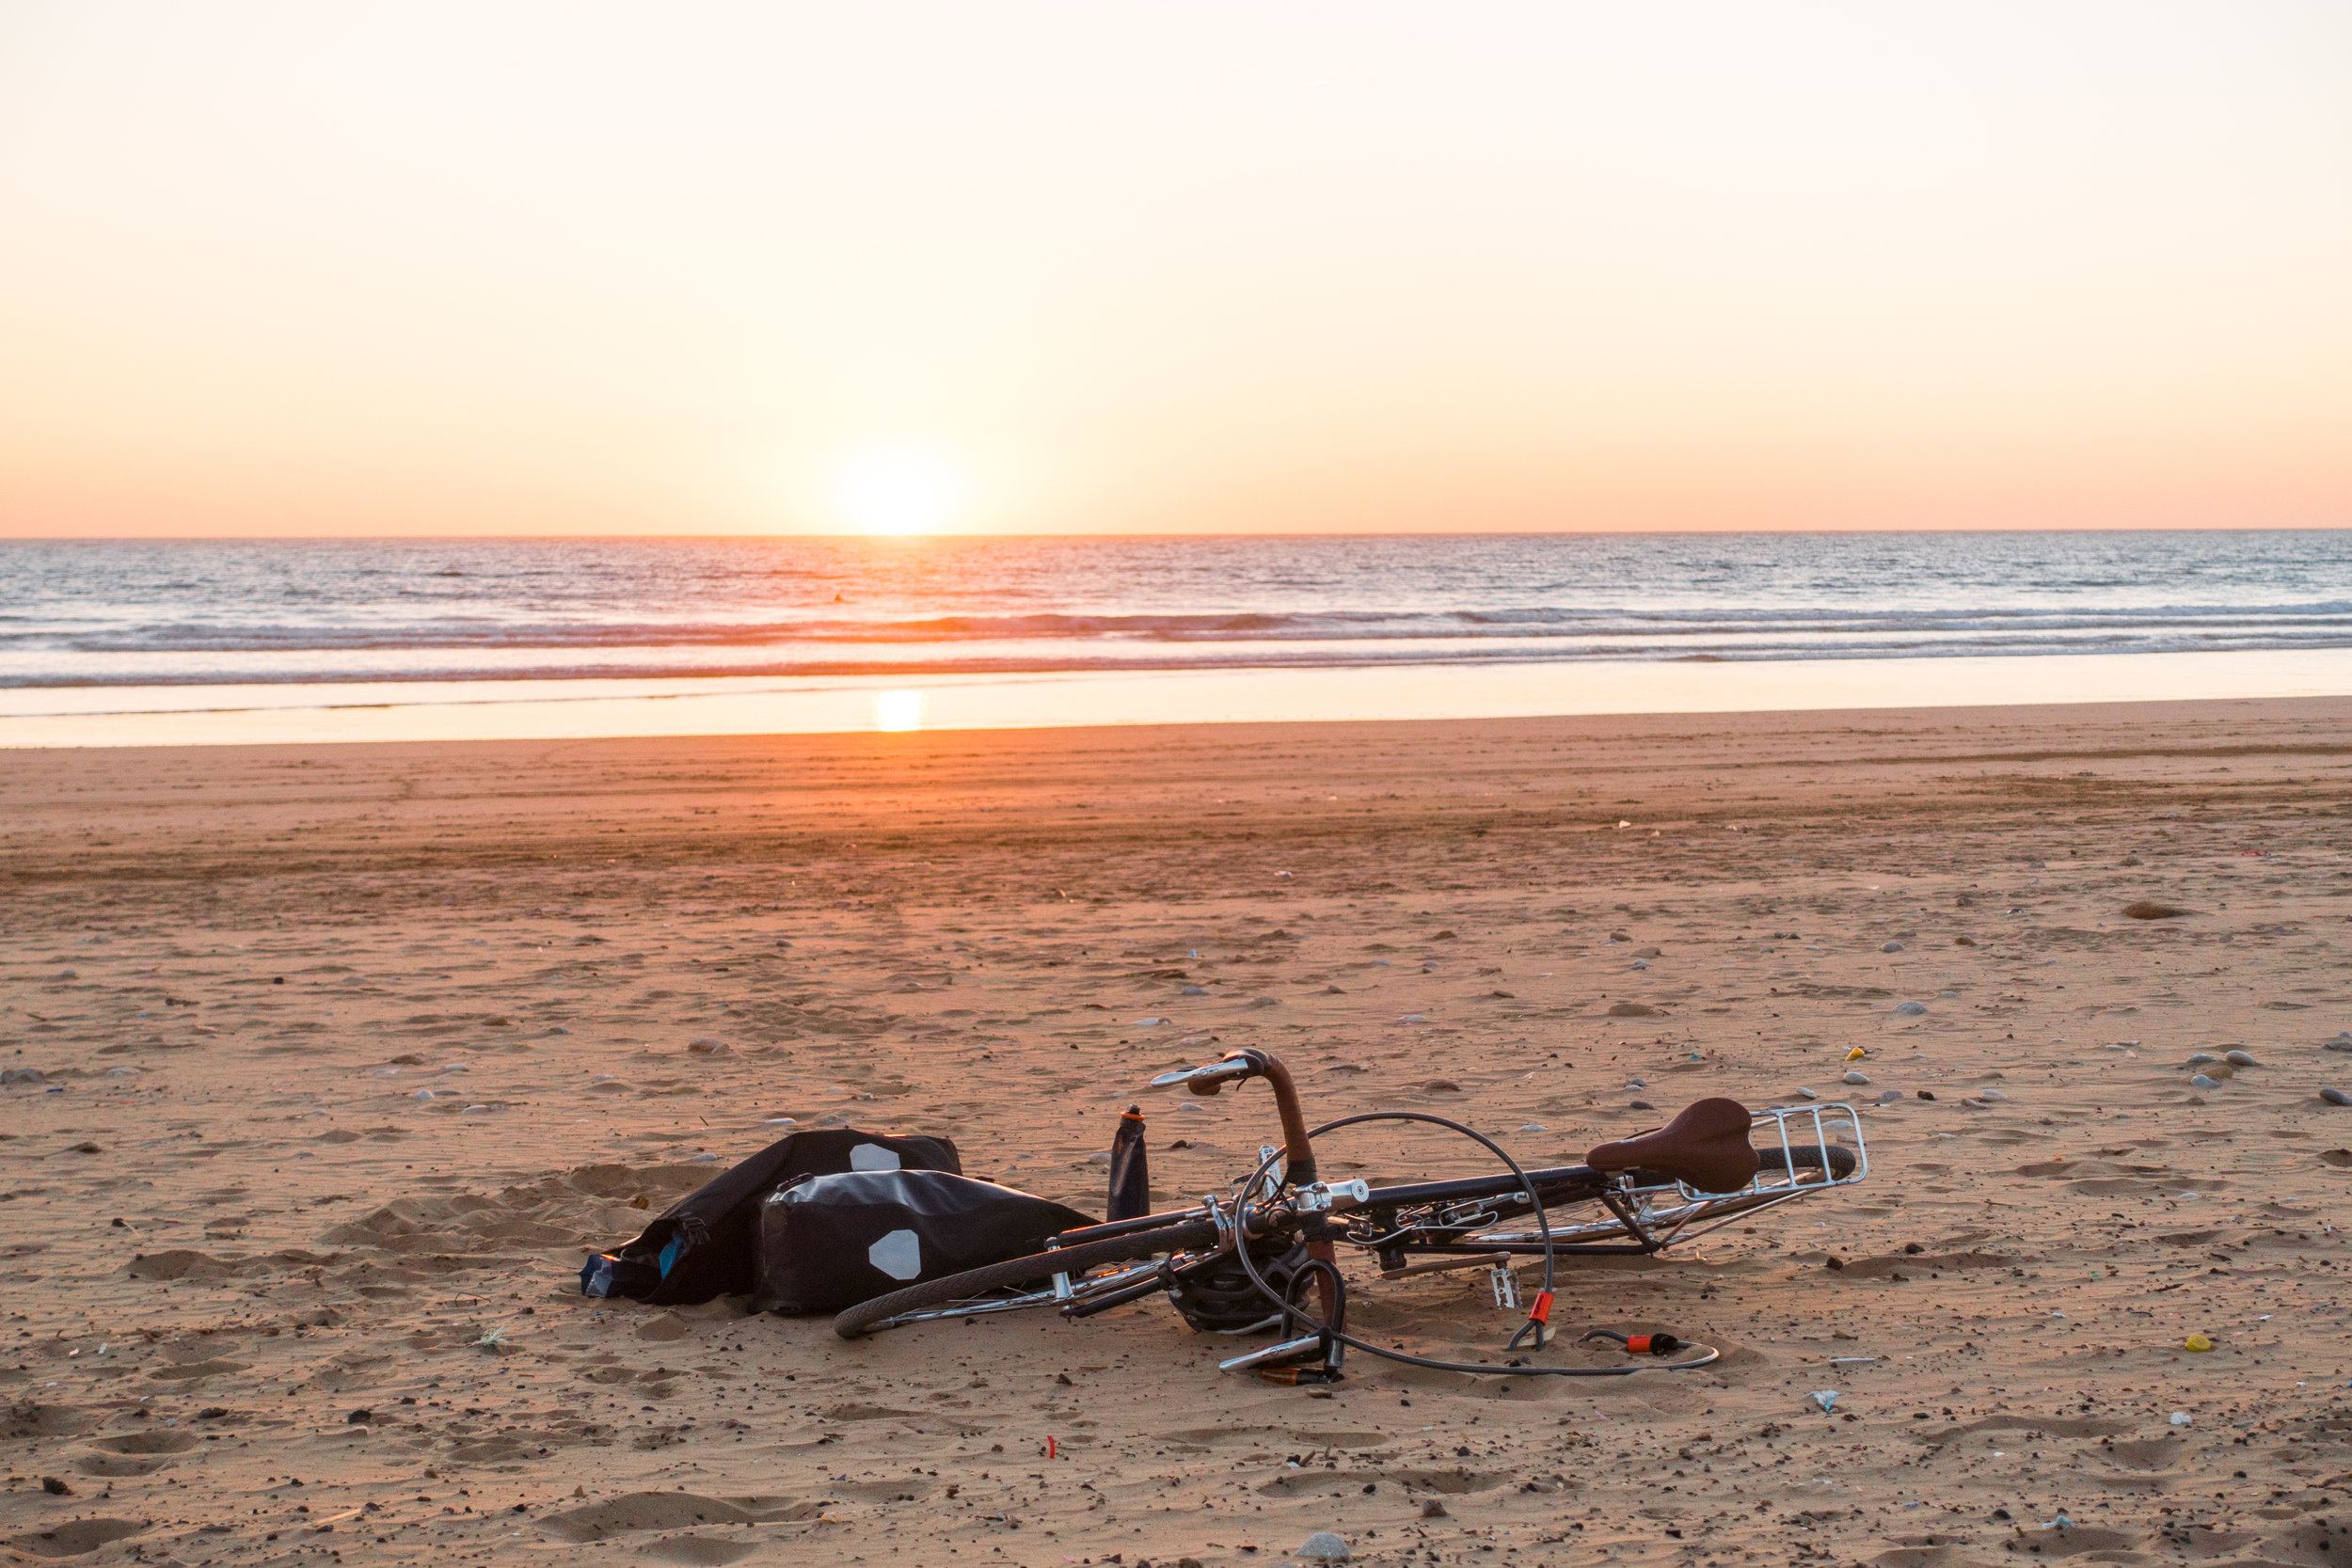 Enjoying a sunset on the empty beaches of Morocco's southern coast.